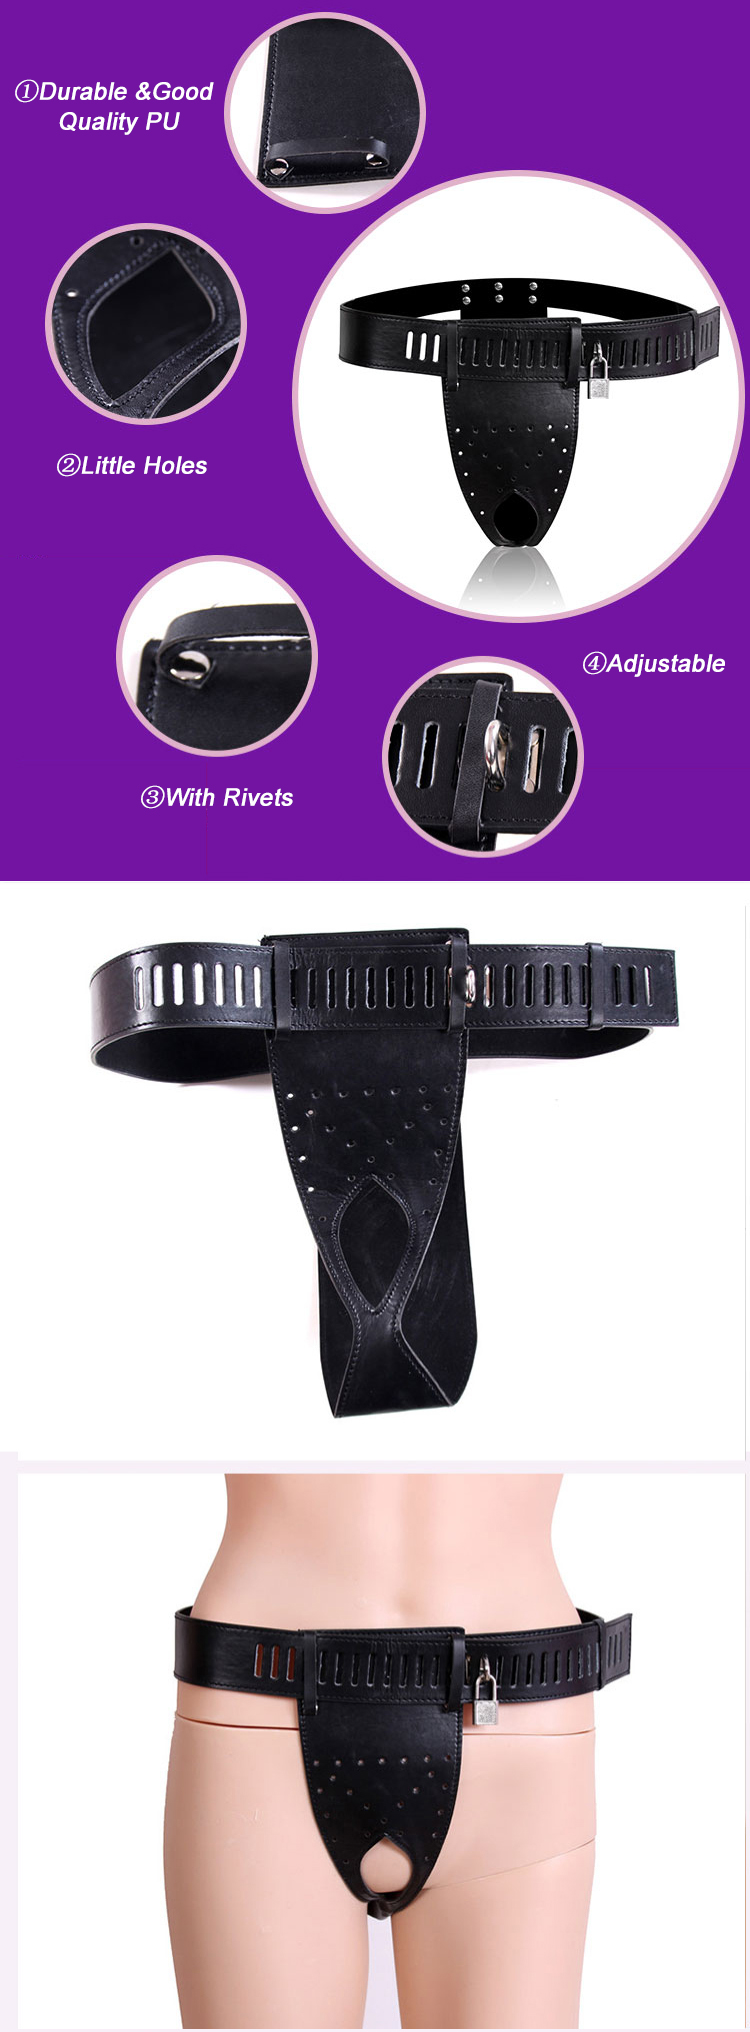 PU Female Adjustable Panties Strap Ons For Couples Sex Toys